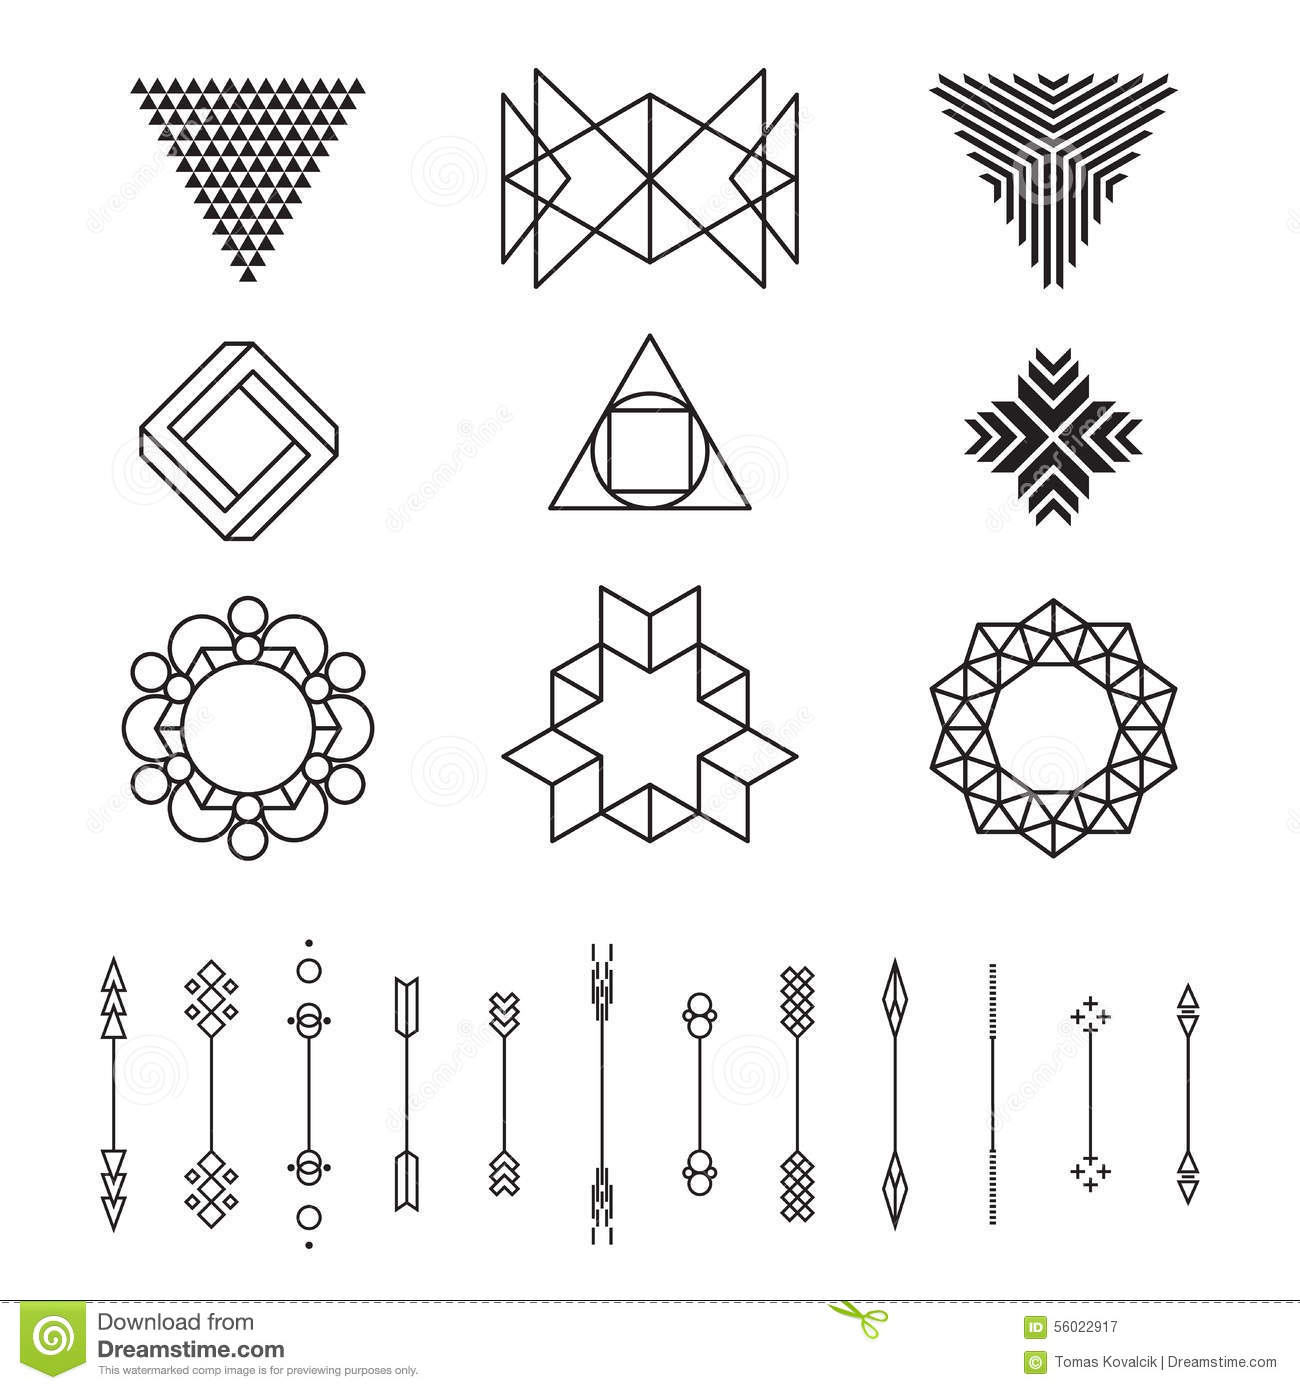 Shapes Designs Art : Set of geometric shapes vector illustration isolated